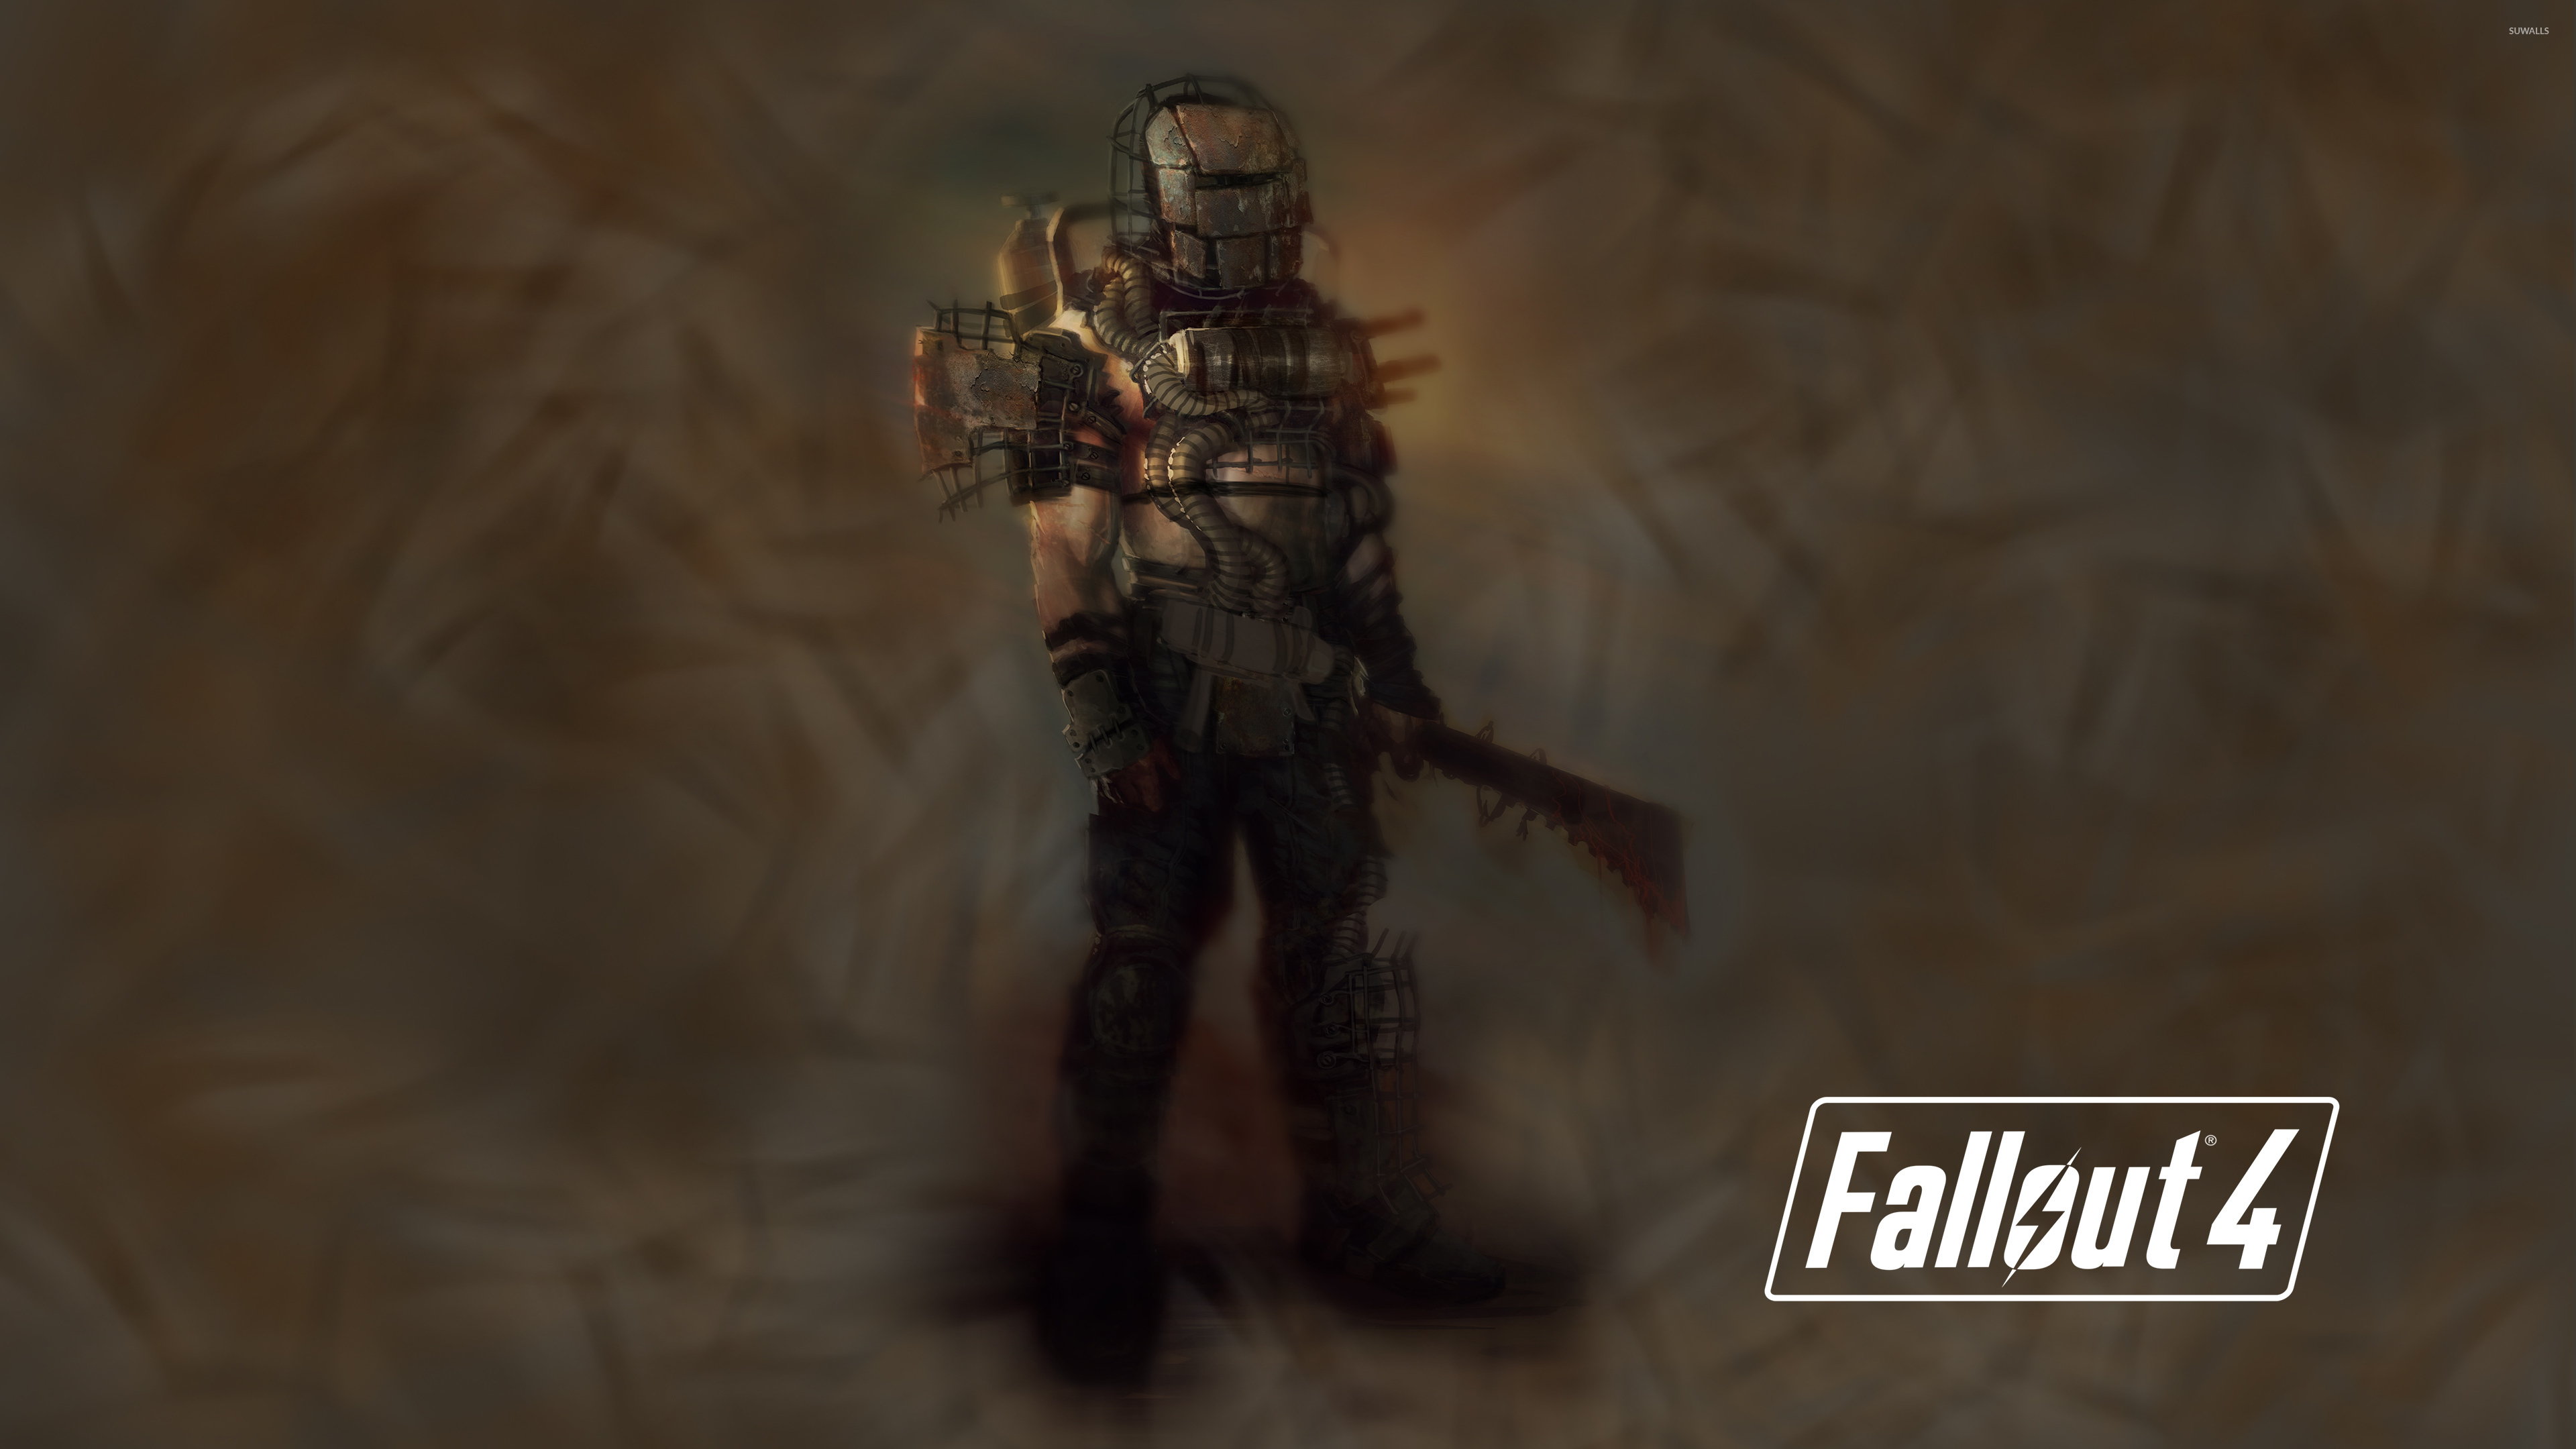 How To Use Wall Lights Fallout 4 : Fallout 4 raider wallpaper - Game wallpapers - #49943